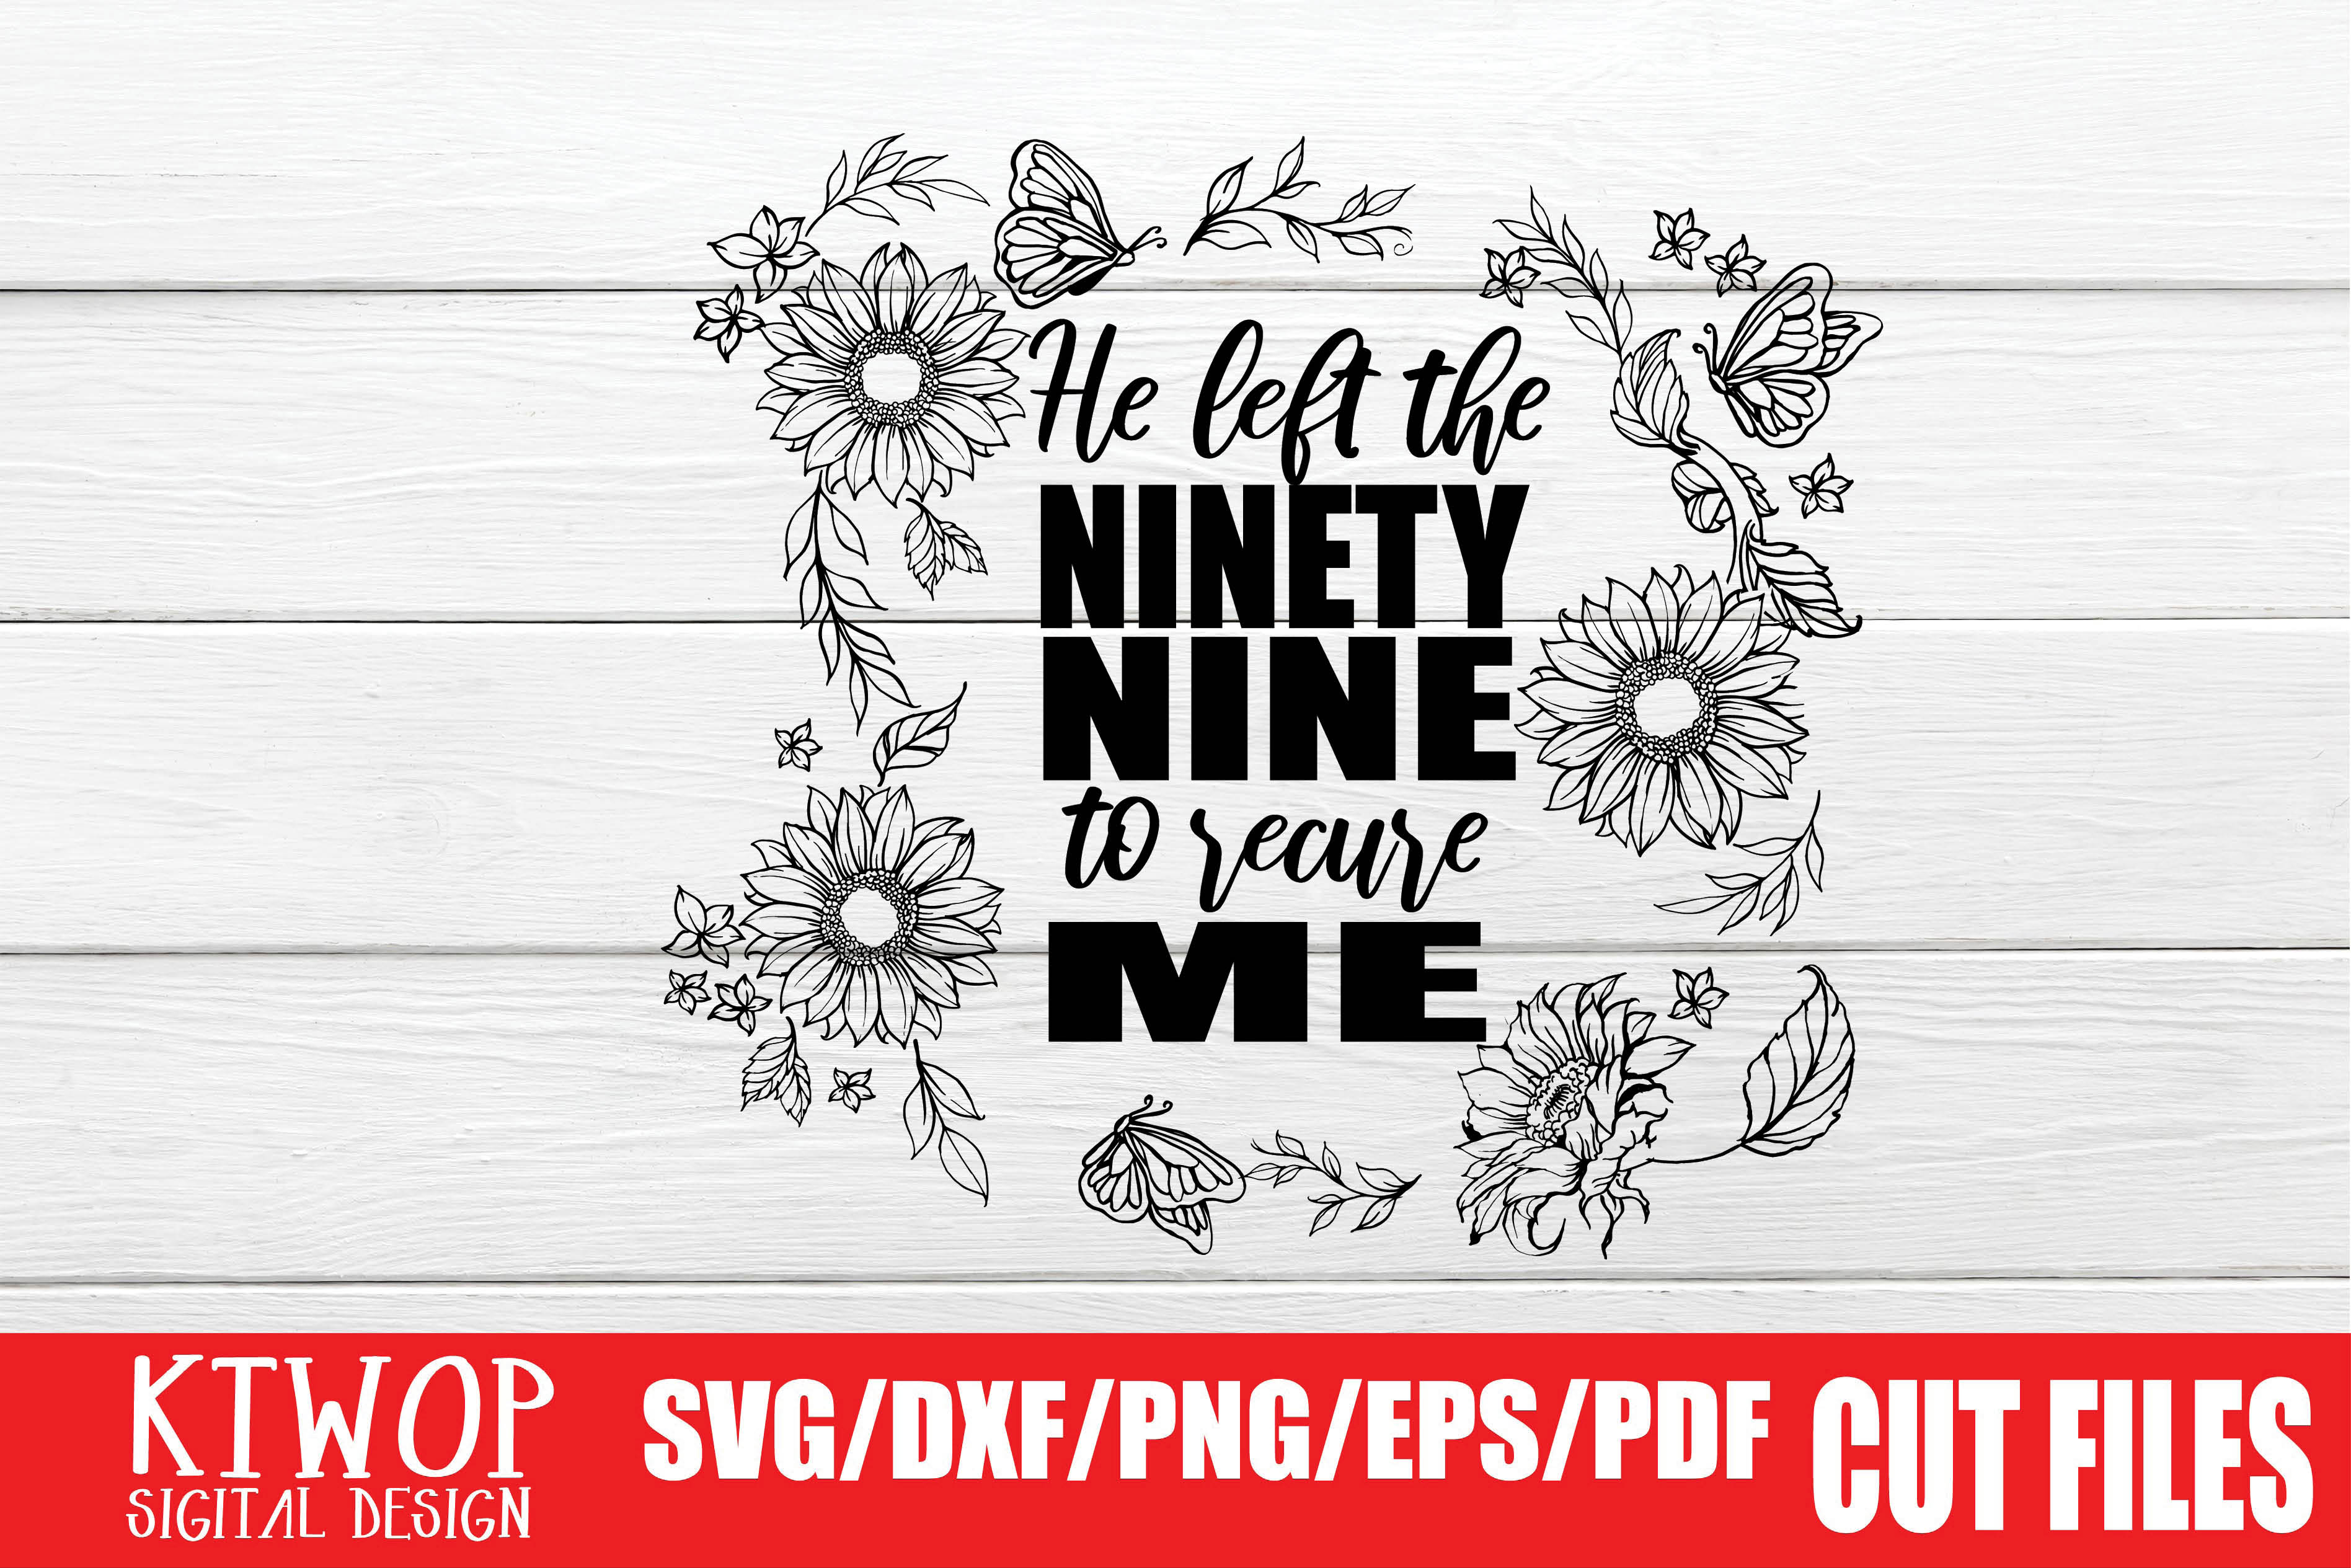 Download Free He Left The Ninety Nine To Rescue Me Graphic By Ktwop Creative for Cricut Explore, Silhouette and other cutting machines.